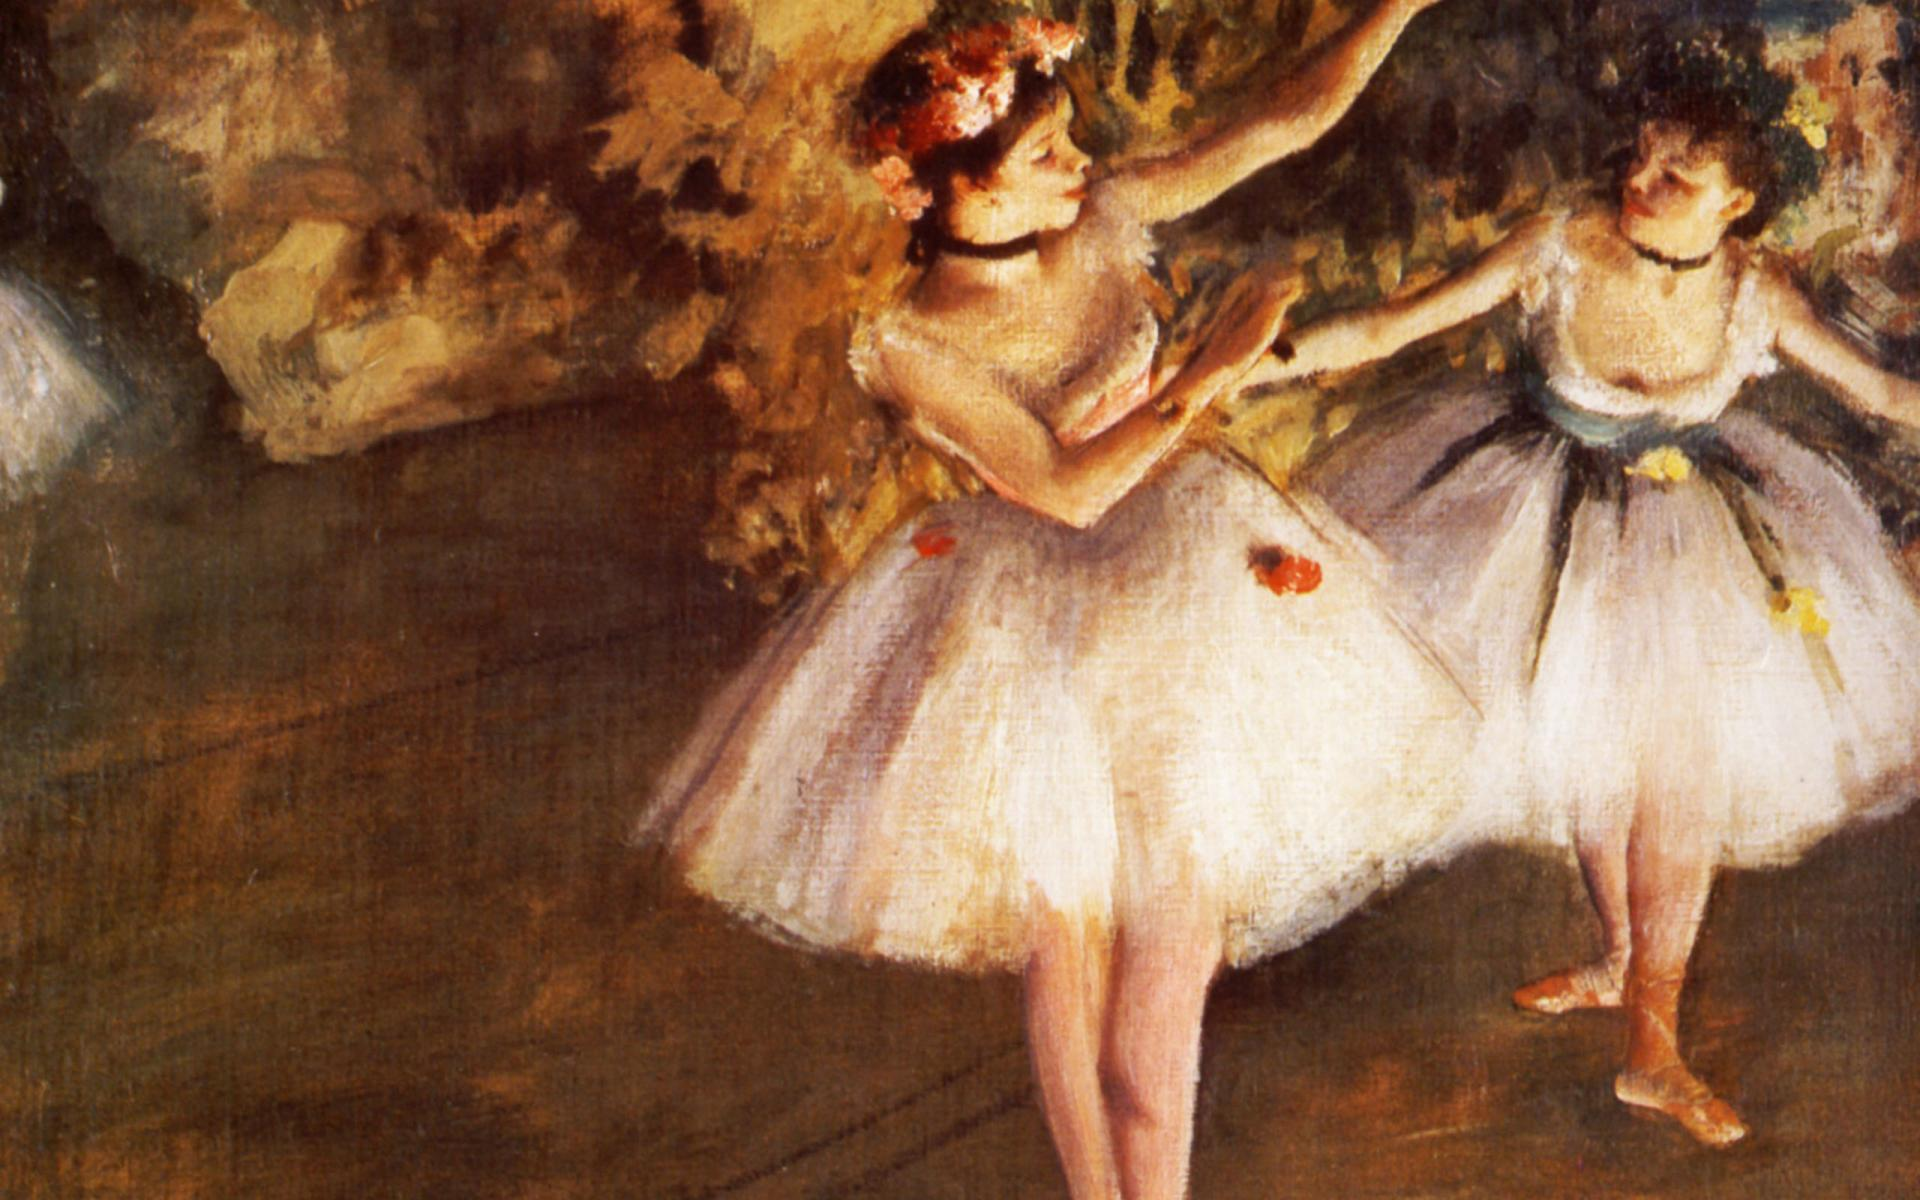 Cuadros Al Oleo De Bailarinas Edgar Degas Wallpapers Wallpaper Cave